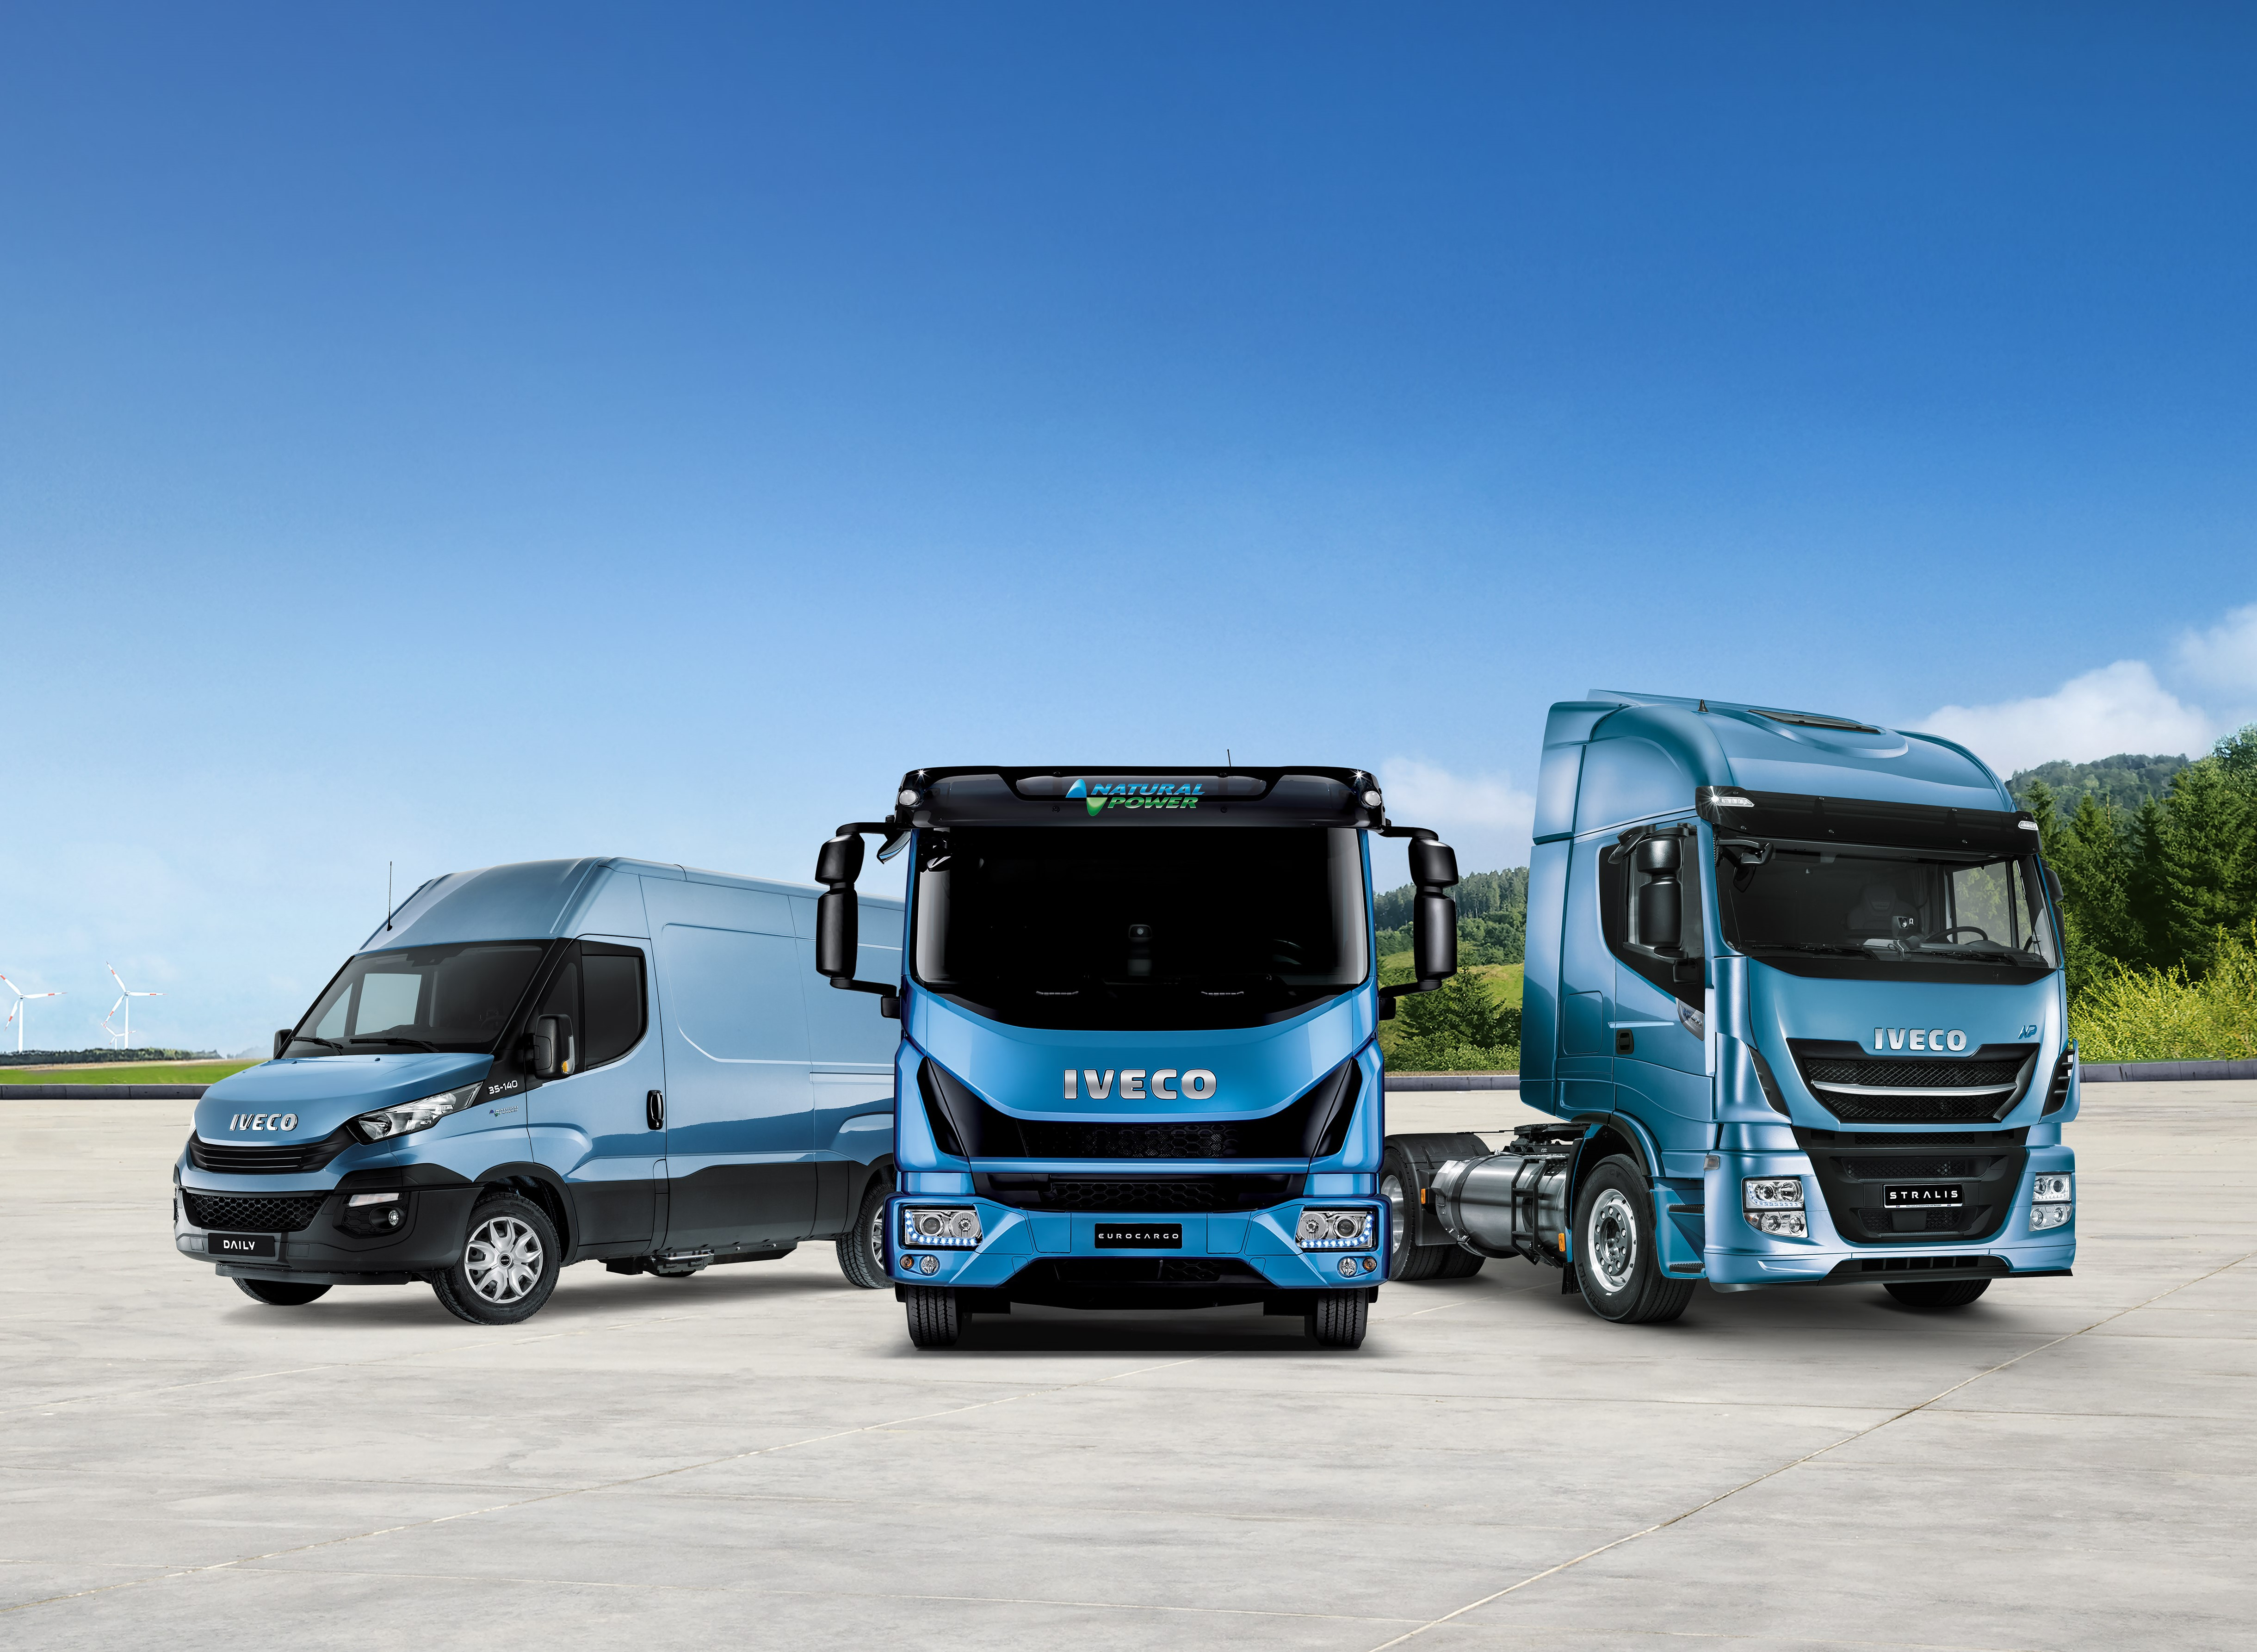 IVECO_CNG range